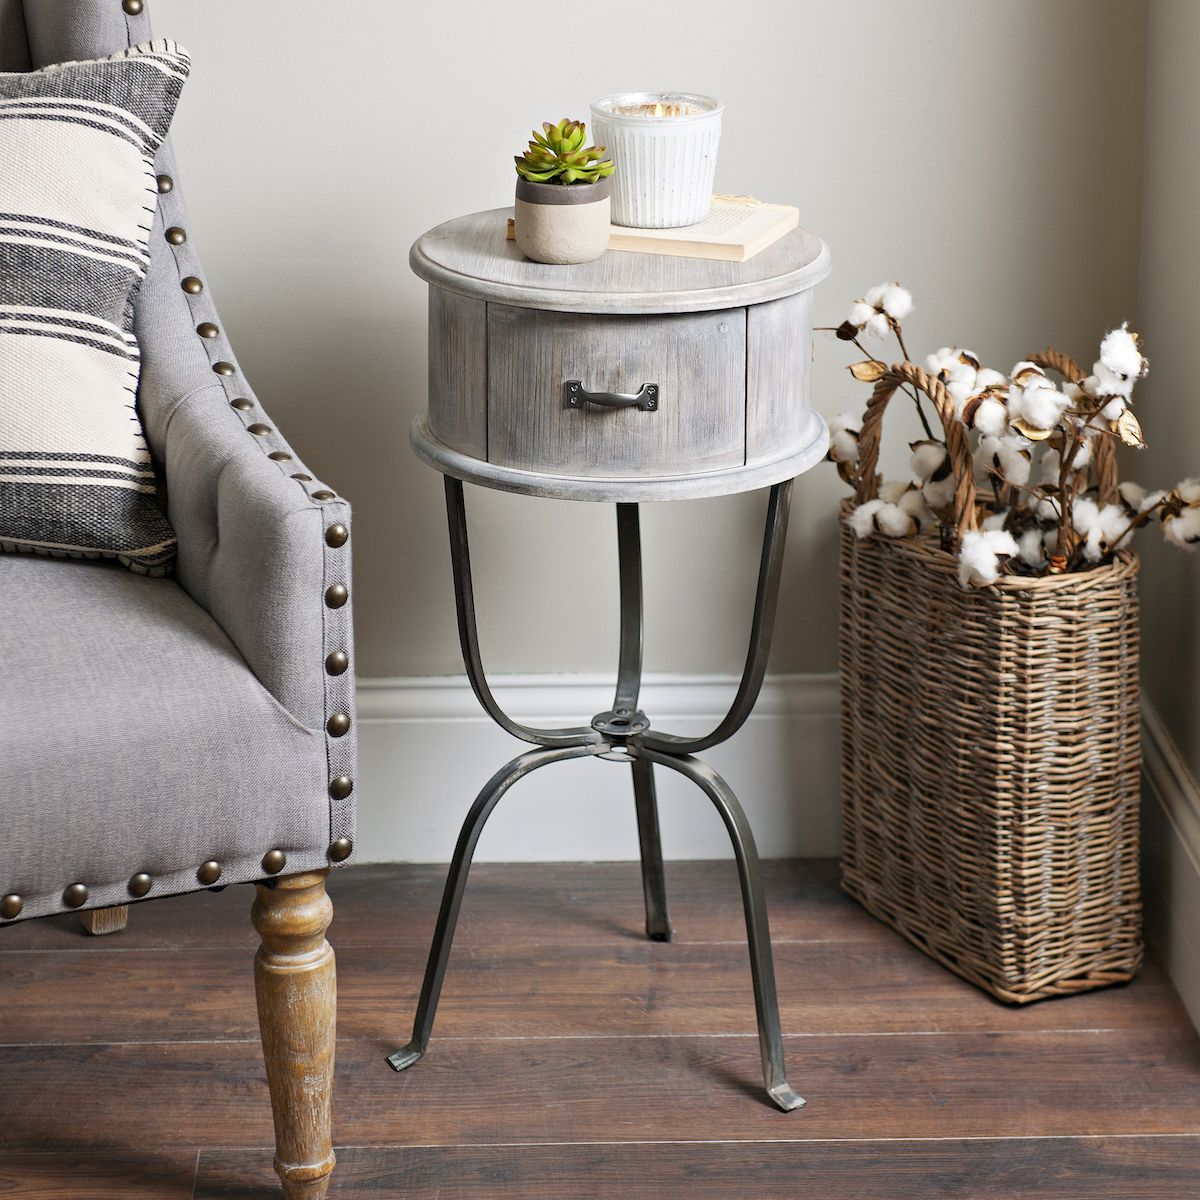 don give style small spaces this accent table was made for tables tight squeeze diy coffee legs timmy nightstand black pottery barn pedestal threshold windham buffet corner